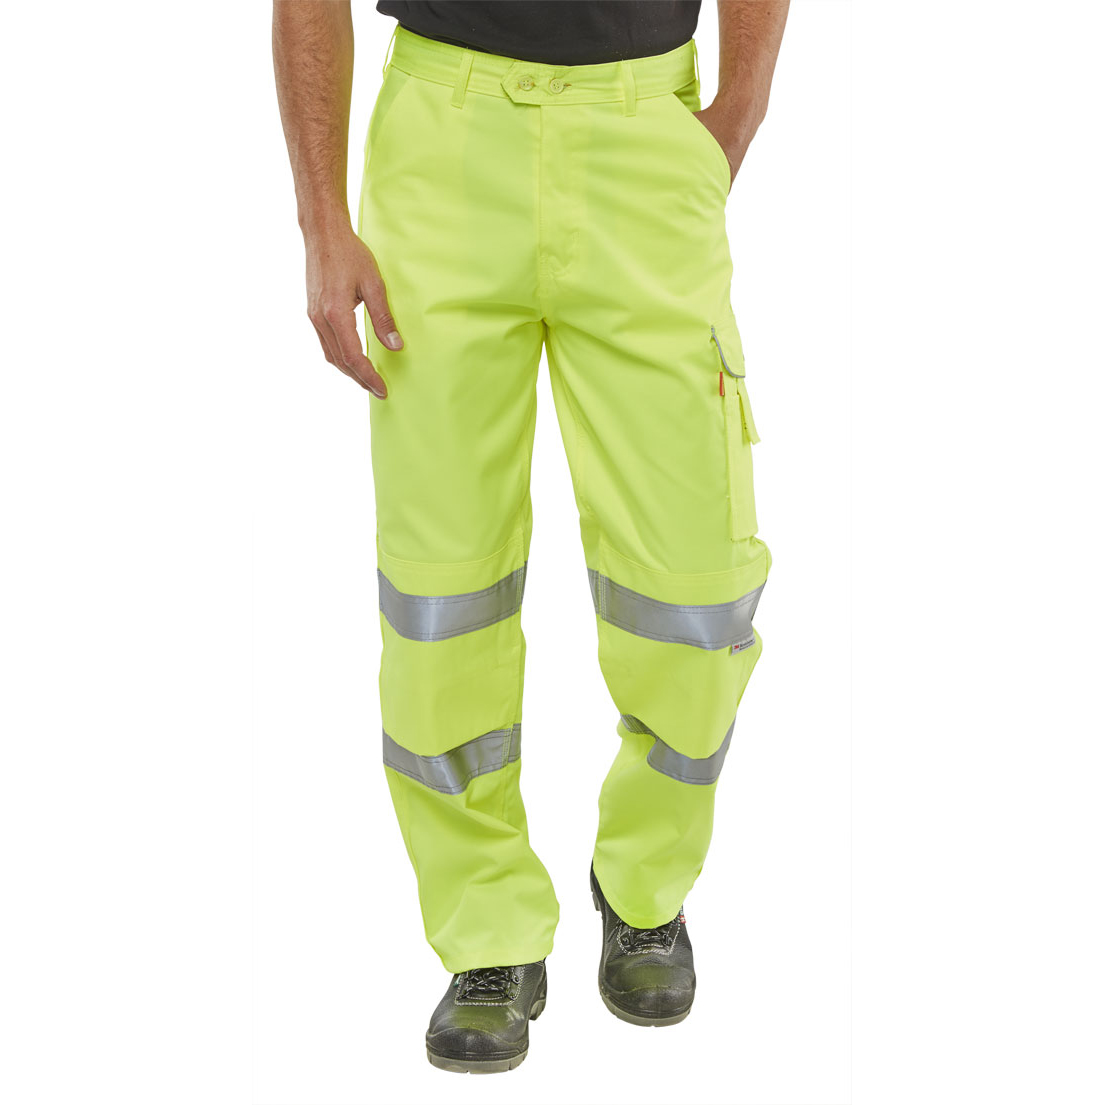 Ladies BSeen Trousers Polycotton Hi-Vis EN471 Saturn Yellow 36 Ref PCTENSY36 *Up to 3 Day Leadtime*